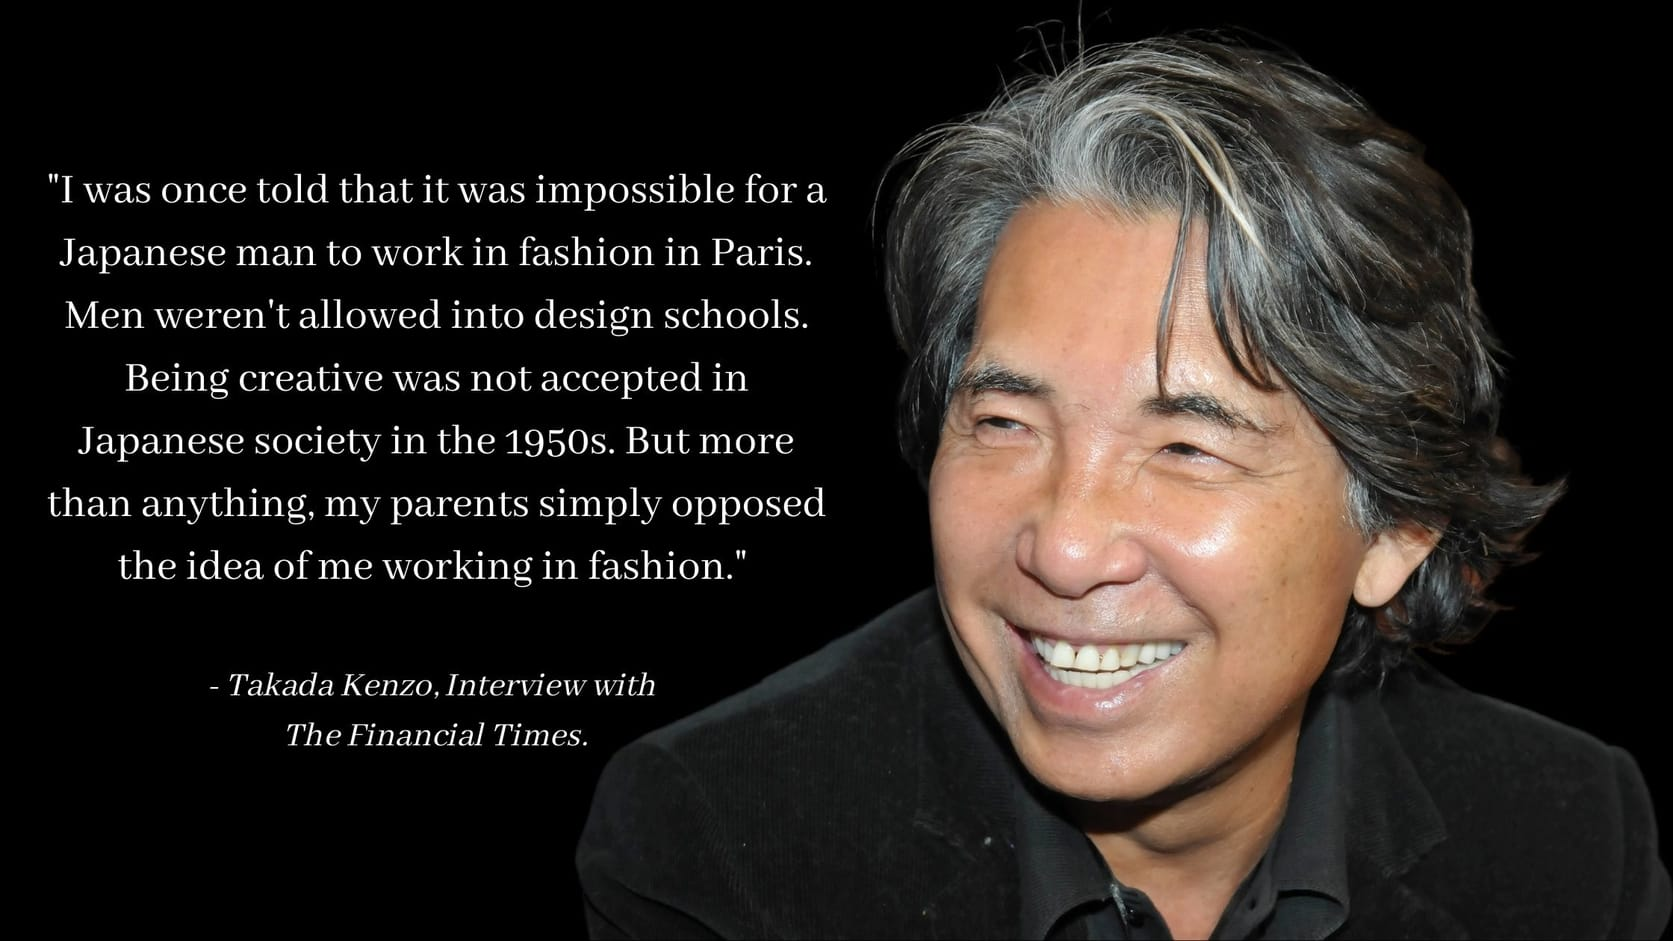 Farewell To Kenzo The Visionary Who Brought Japanese Vibrancy To The World Tokyo Weekender